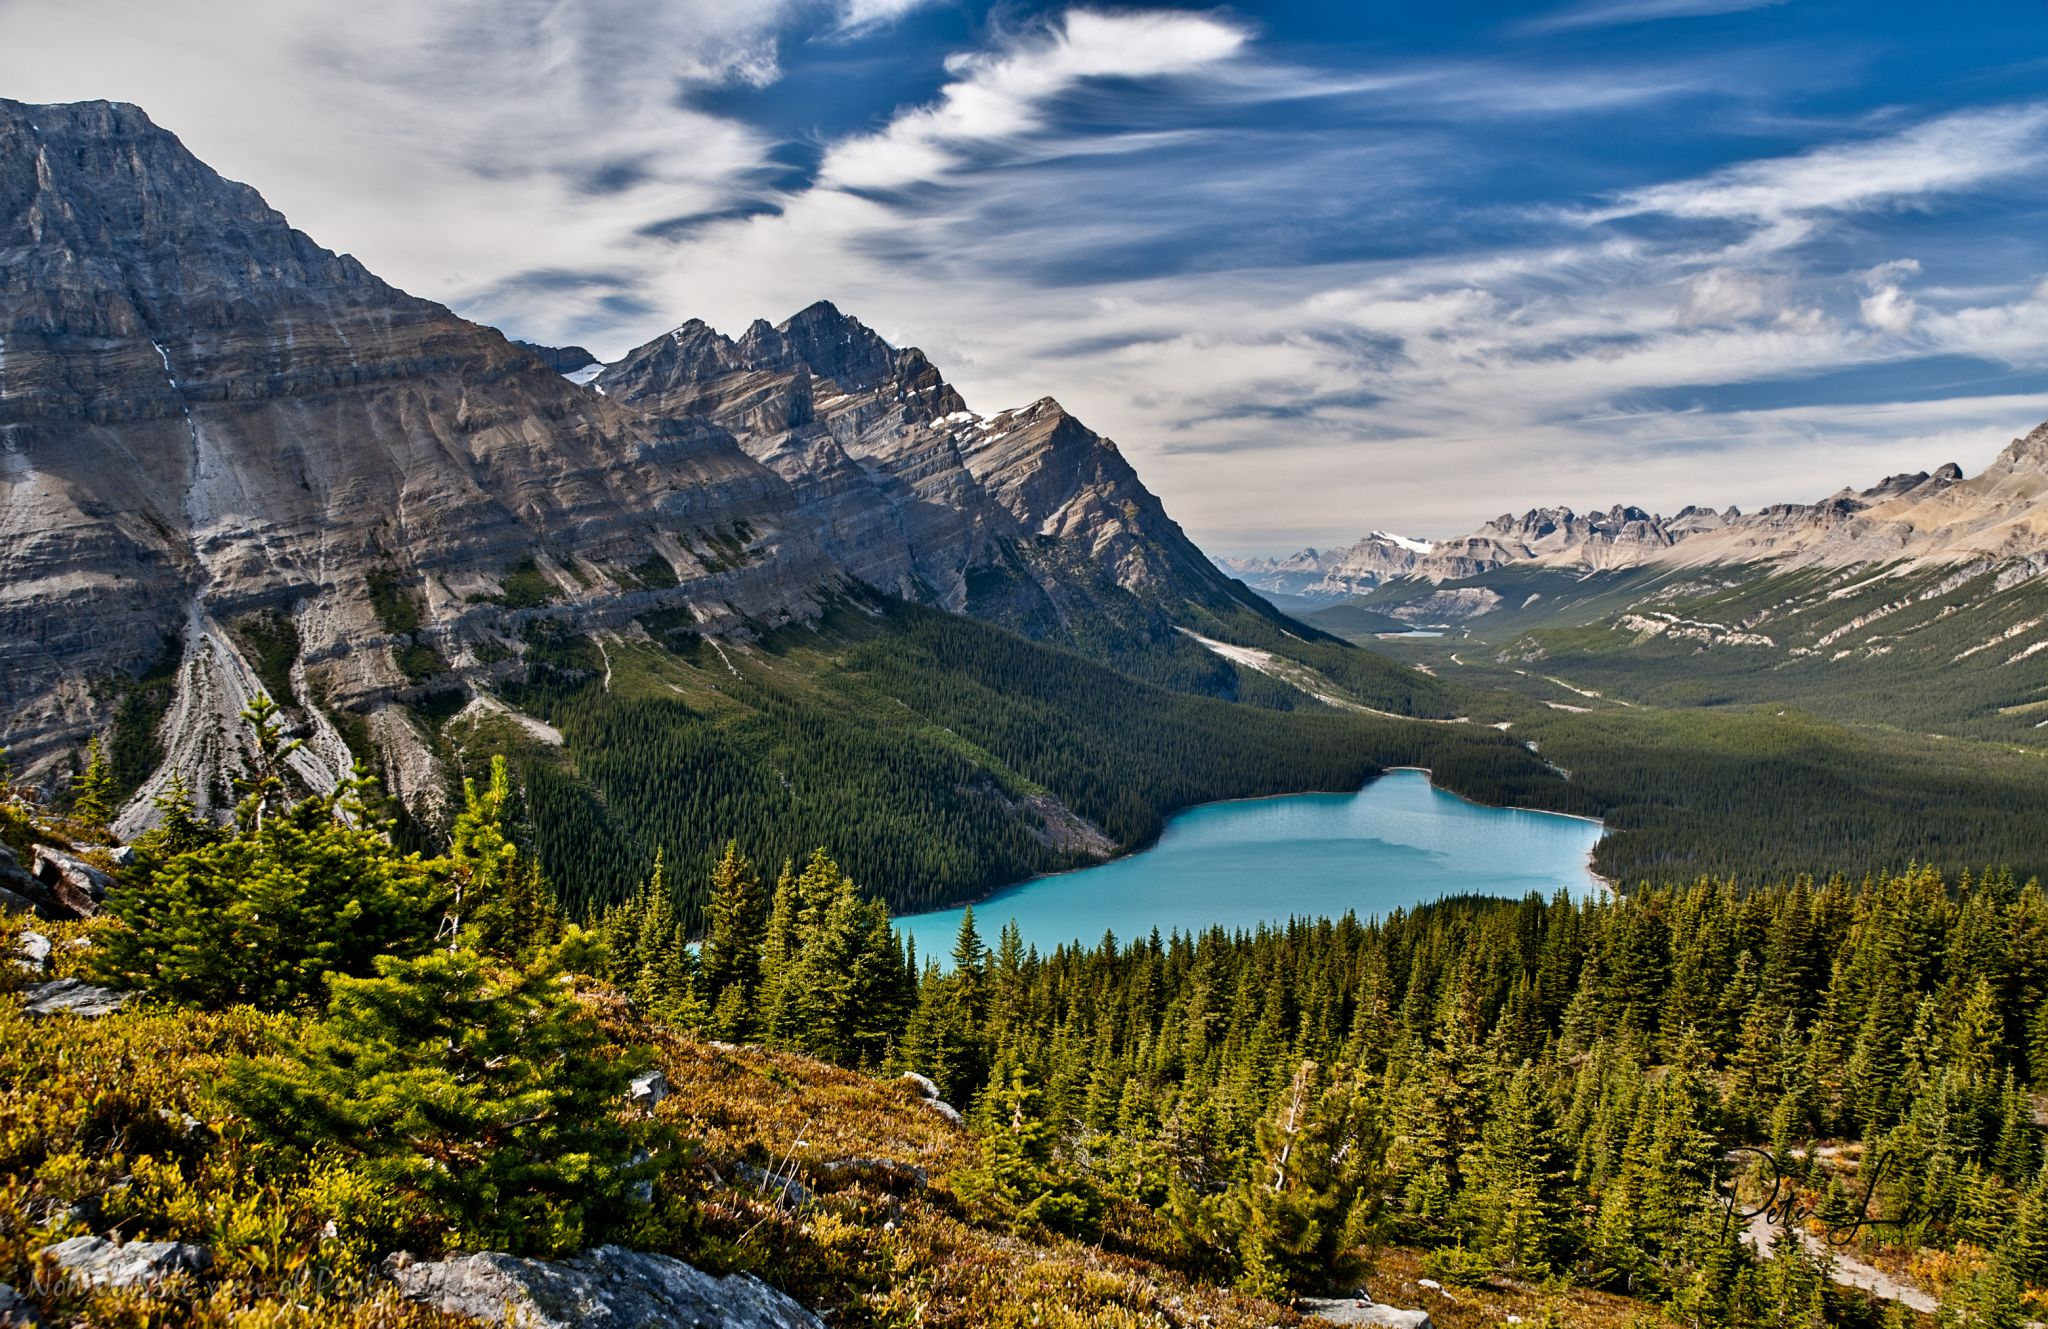 Peyto lake from the Bow Summit Trail, Canada